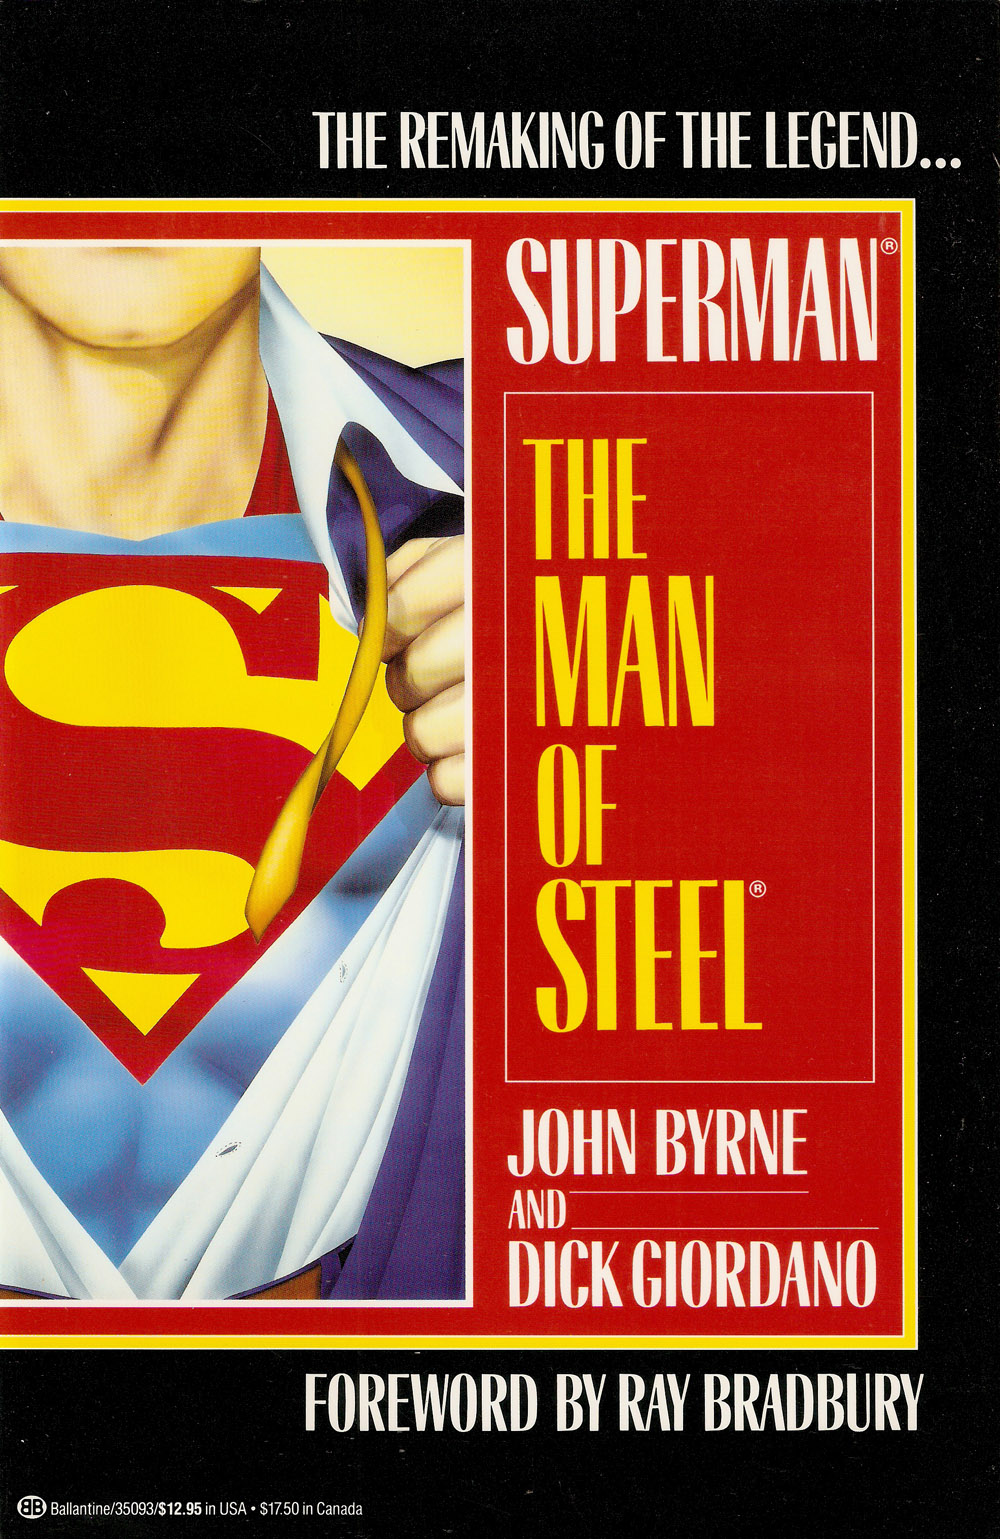 The Version Sold In Comic Shops Has A More Booky Look To It With Beautiful Shot Of John Byrnes Superman Flying Into